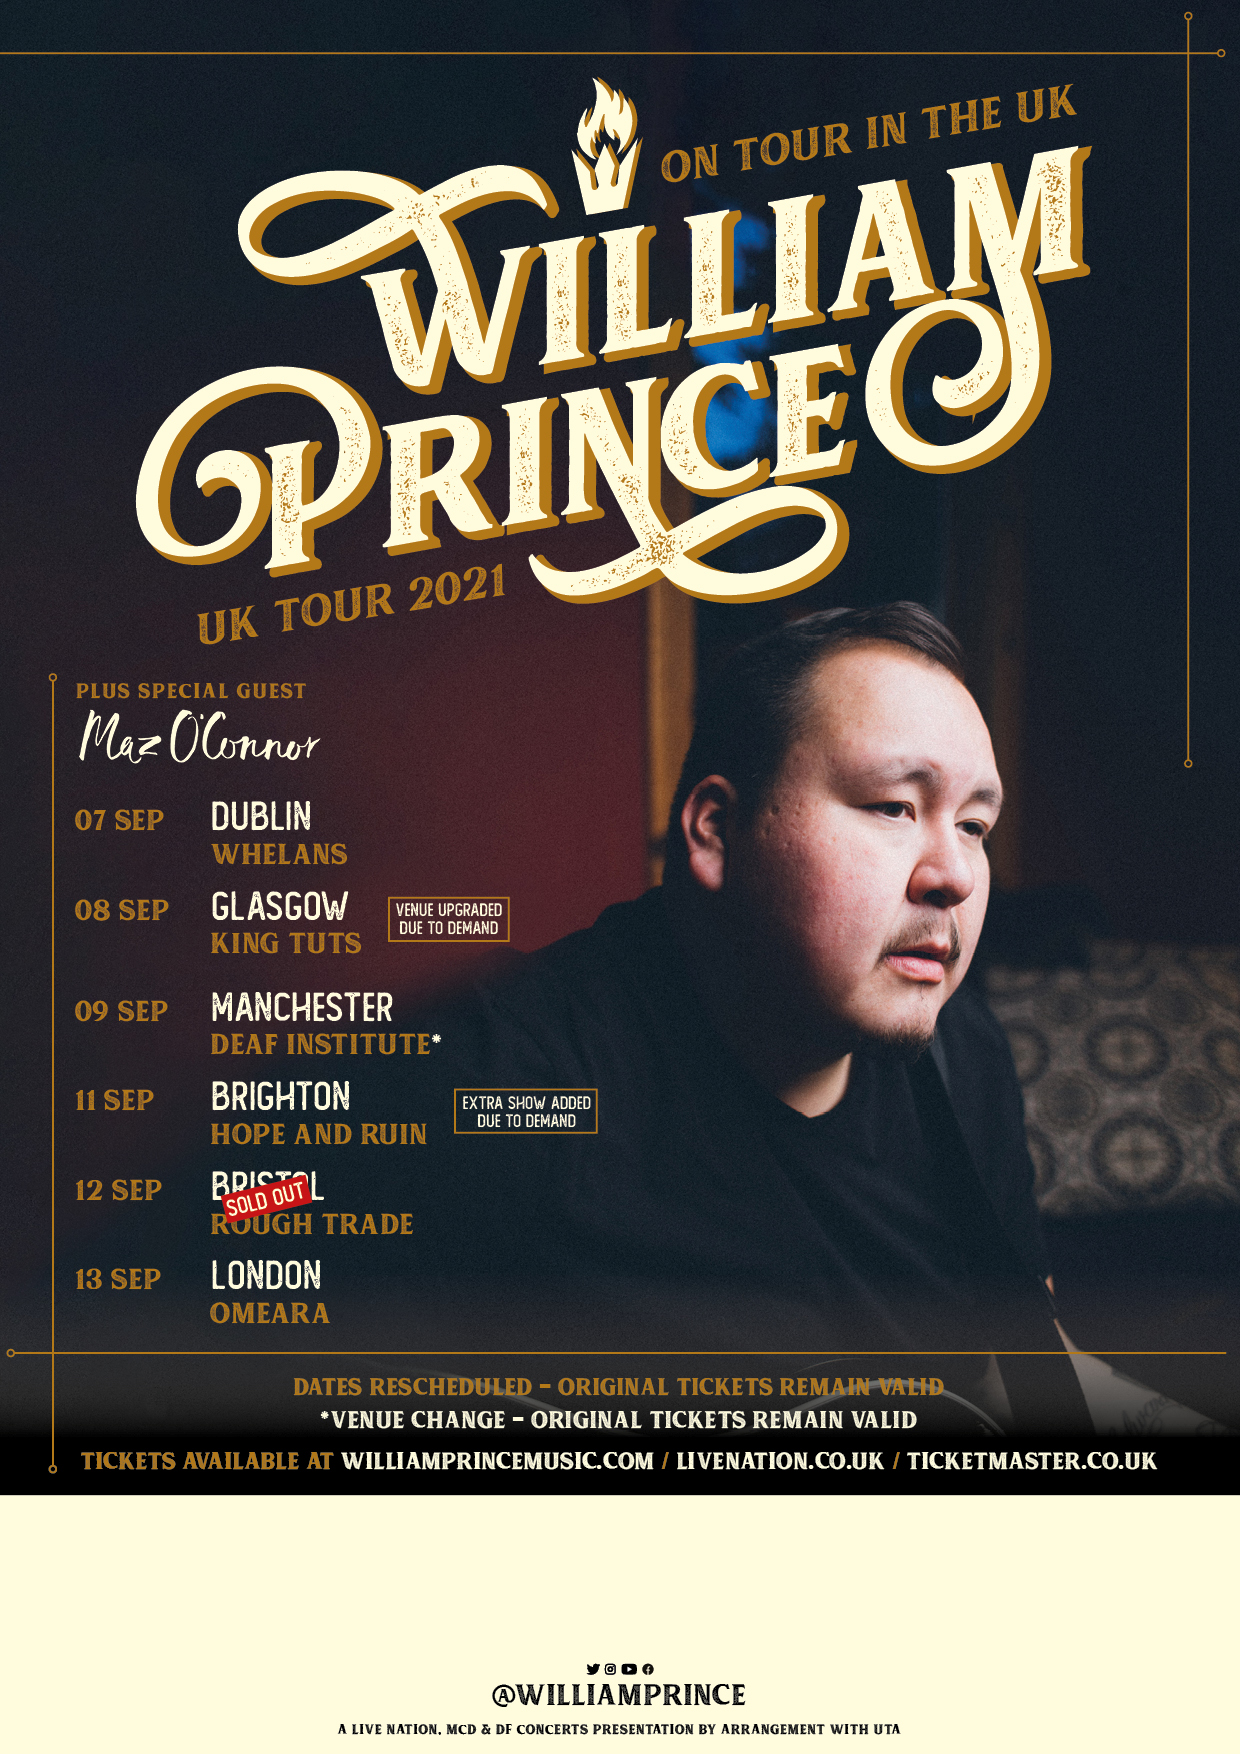 London (opening for William Prince)